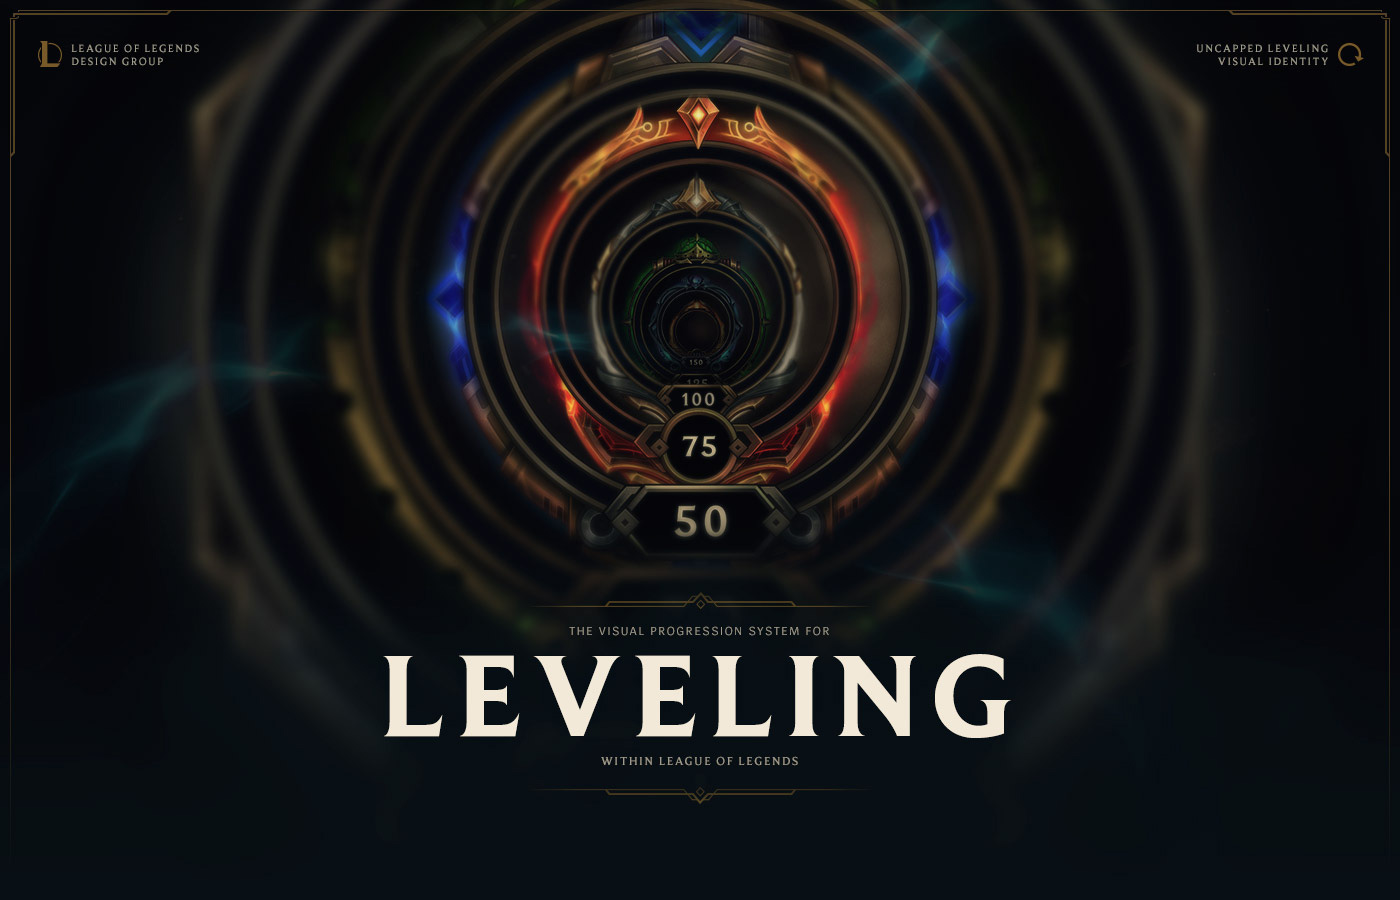 League of Legends // Uncapped Leveling Visual System on Behance